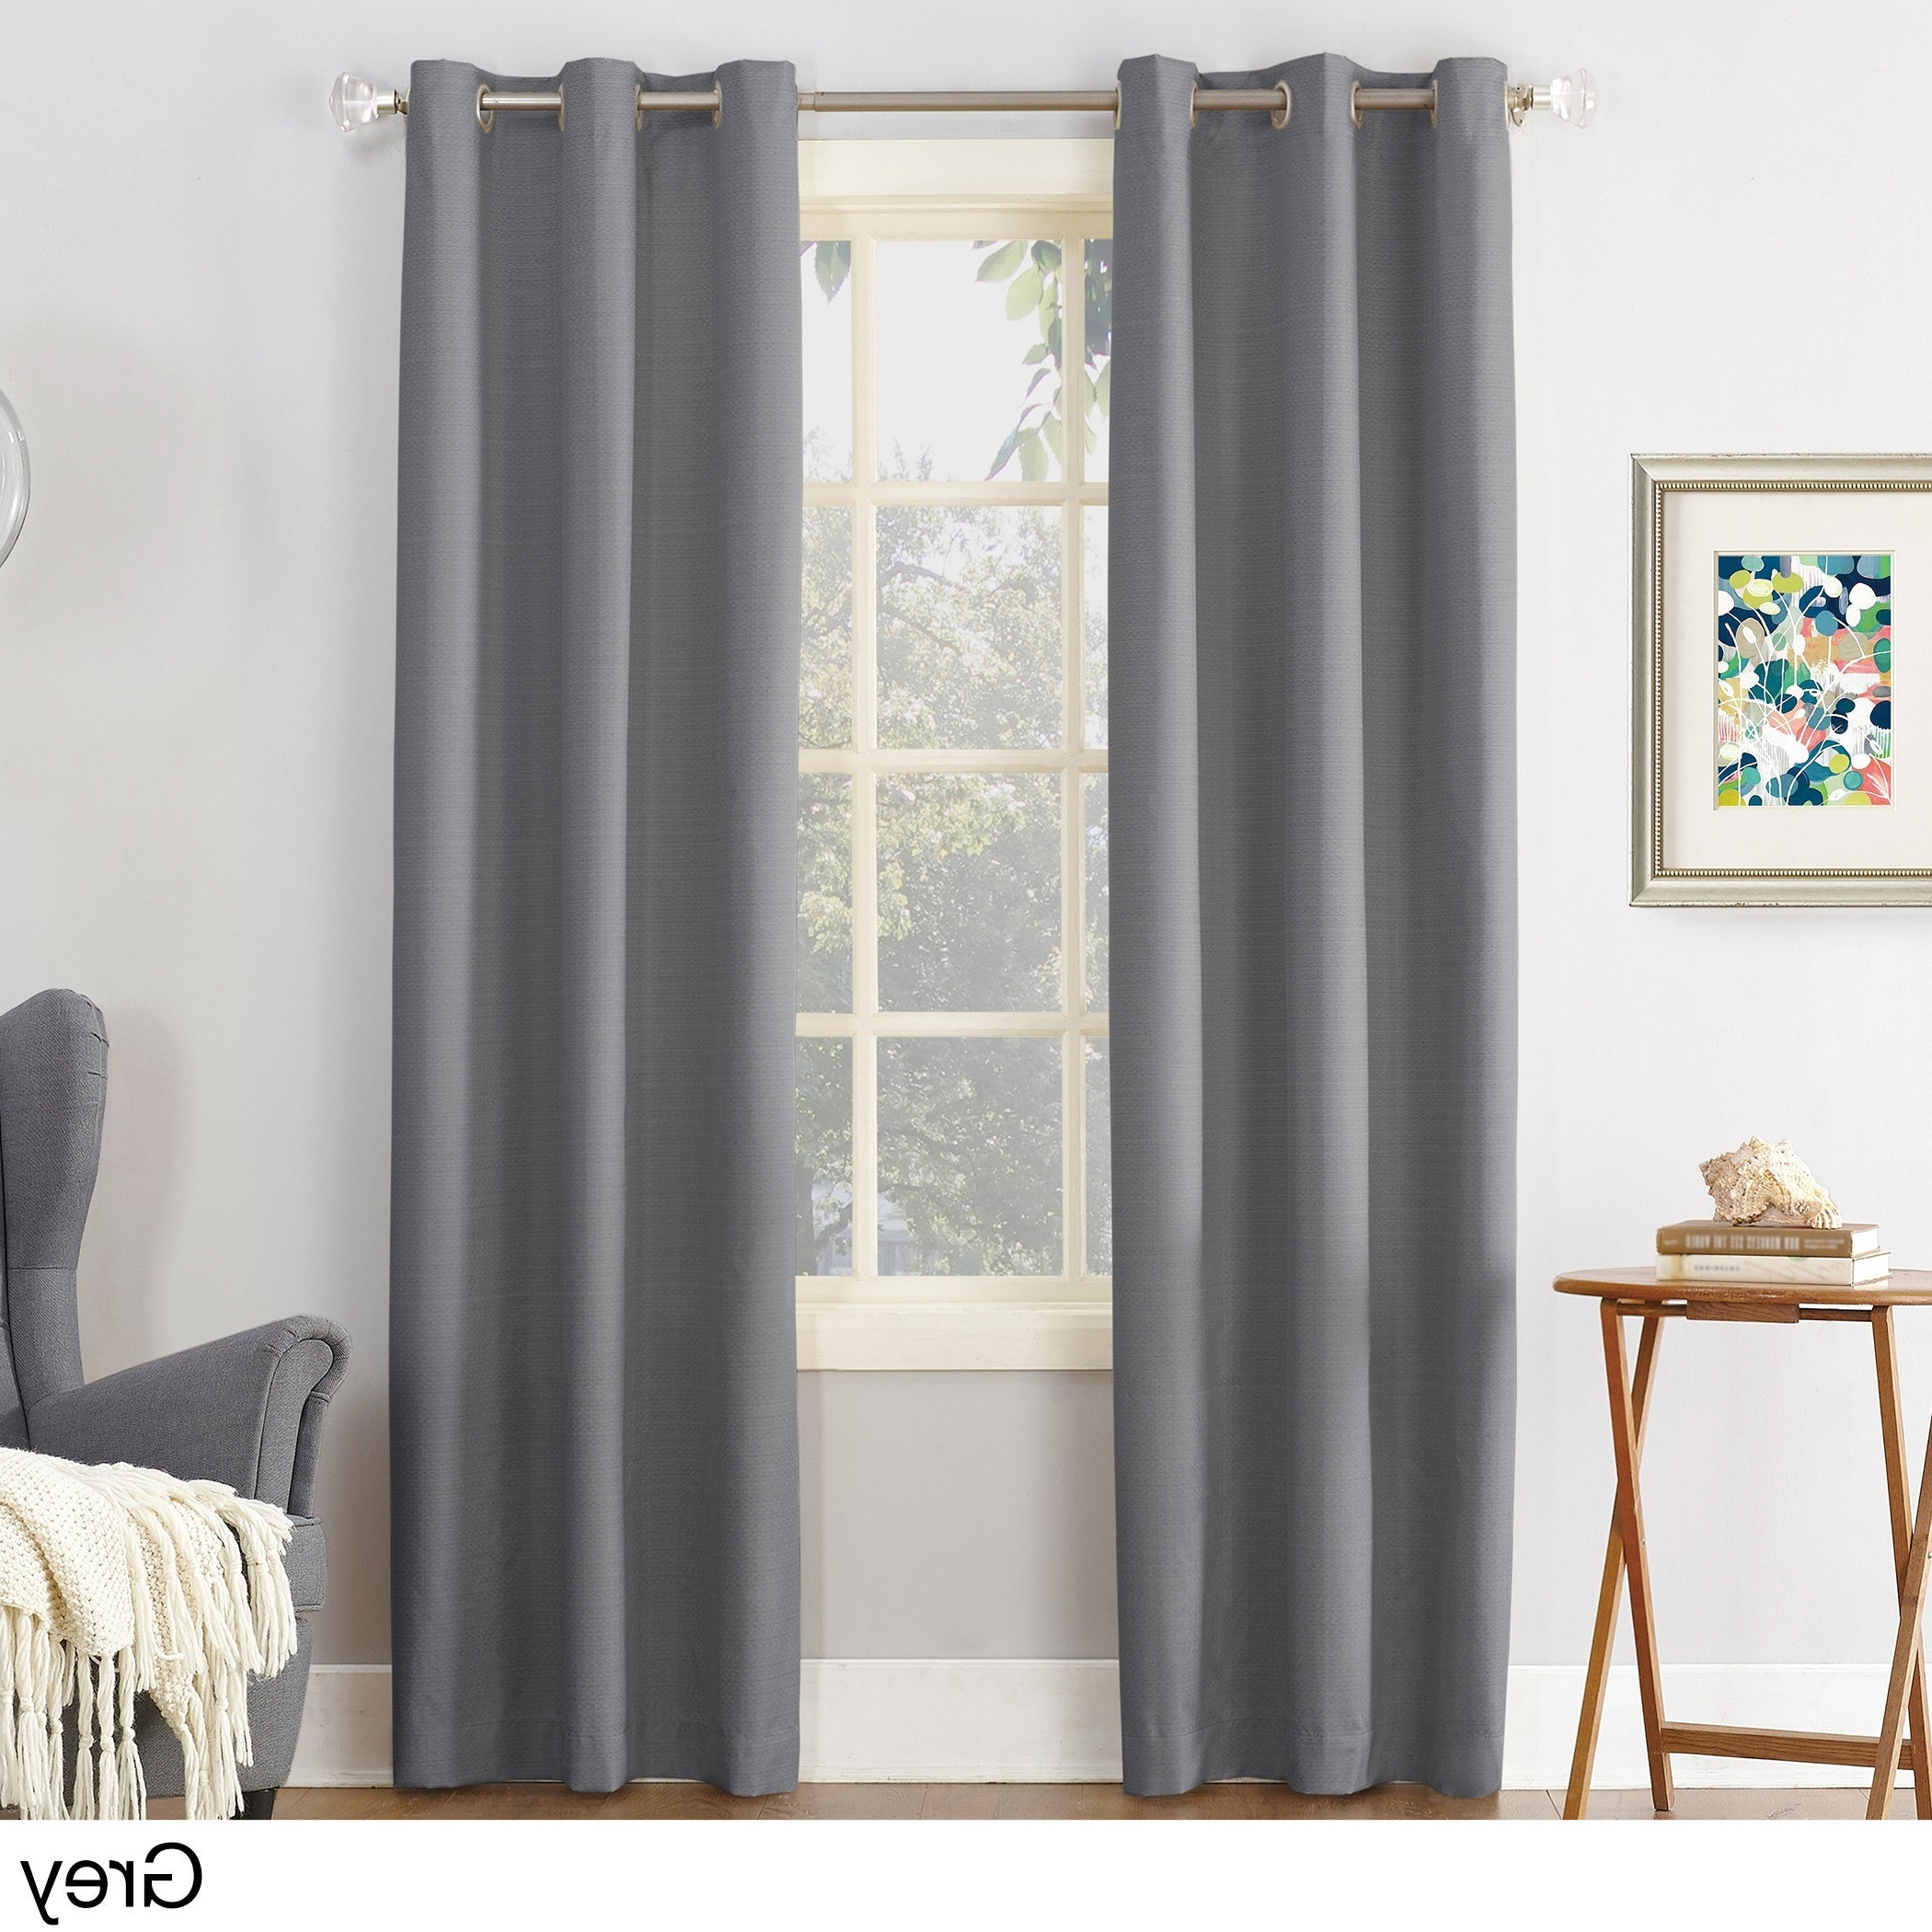 Cooper Textured Thermal Insulated Grommet Curtain Panels Pertaining To 2021 Sun Zero Cooper Textured Thermal Insulated Grommet Curtain Panel (View 5 of 20)